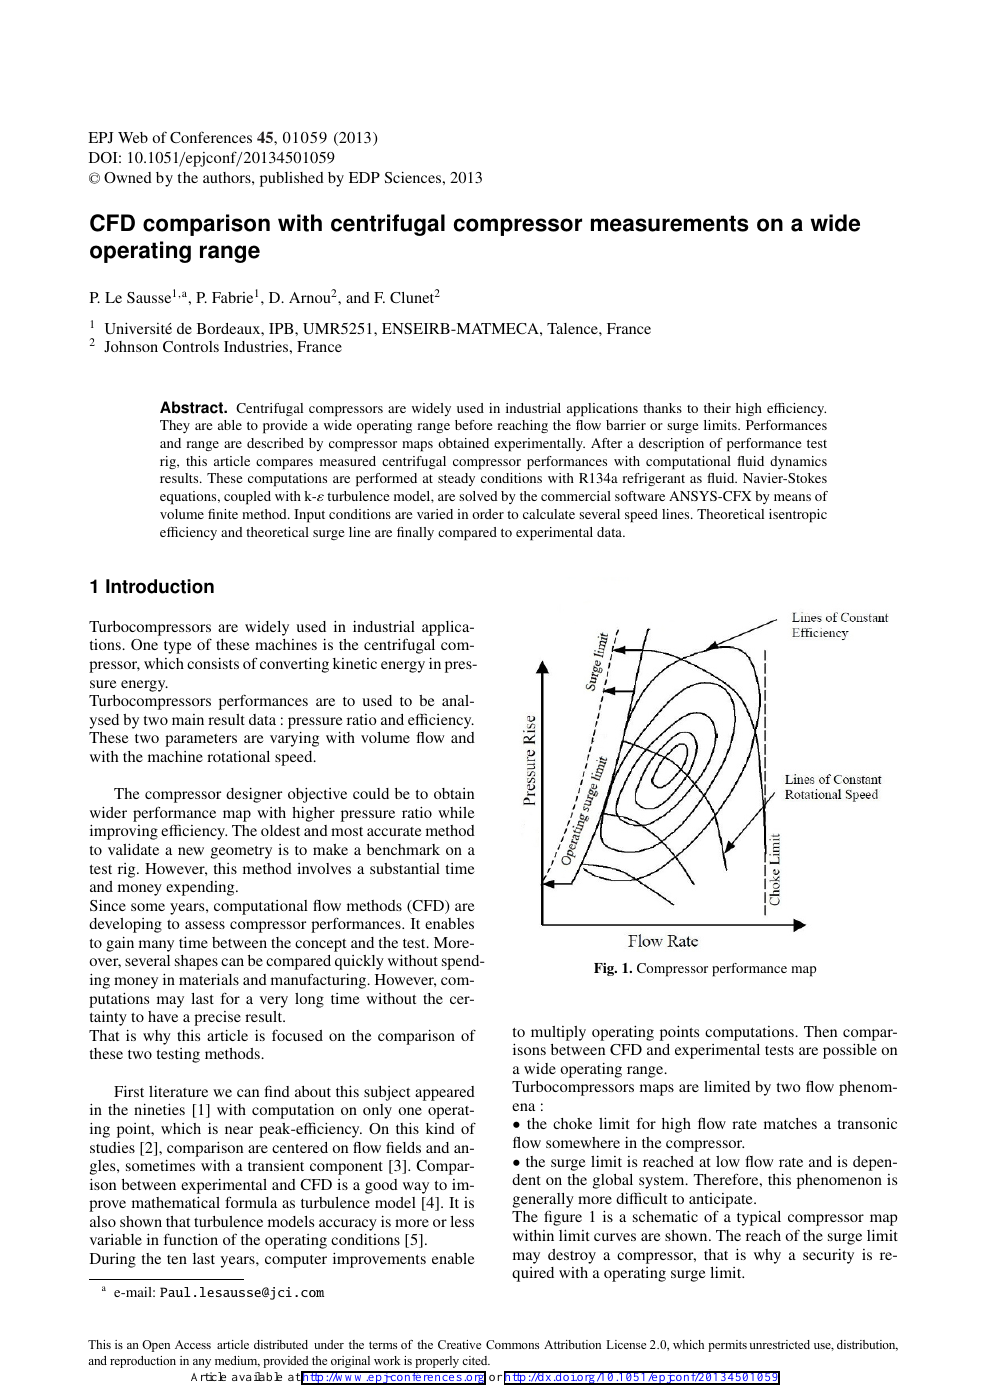 CFD comparison with centrifugal compressor measurements on a wide